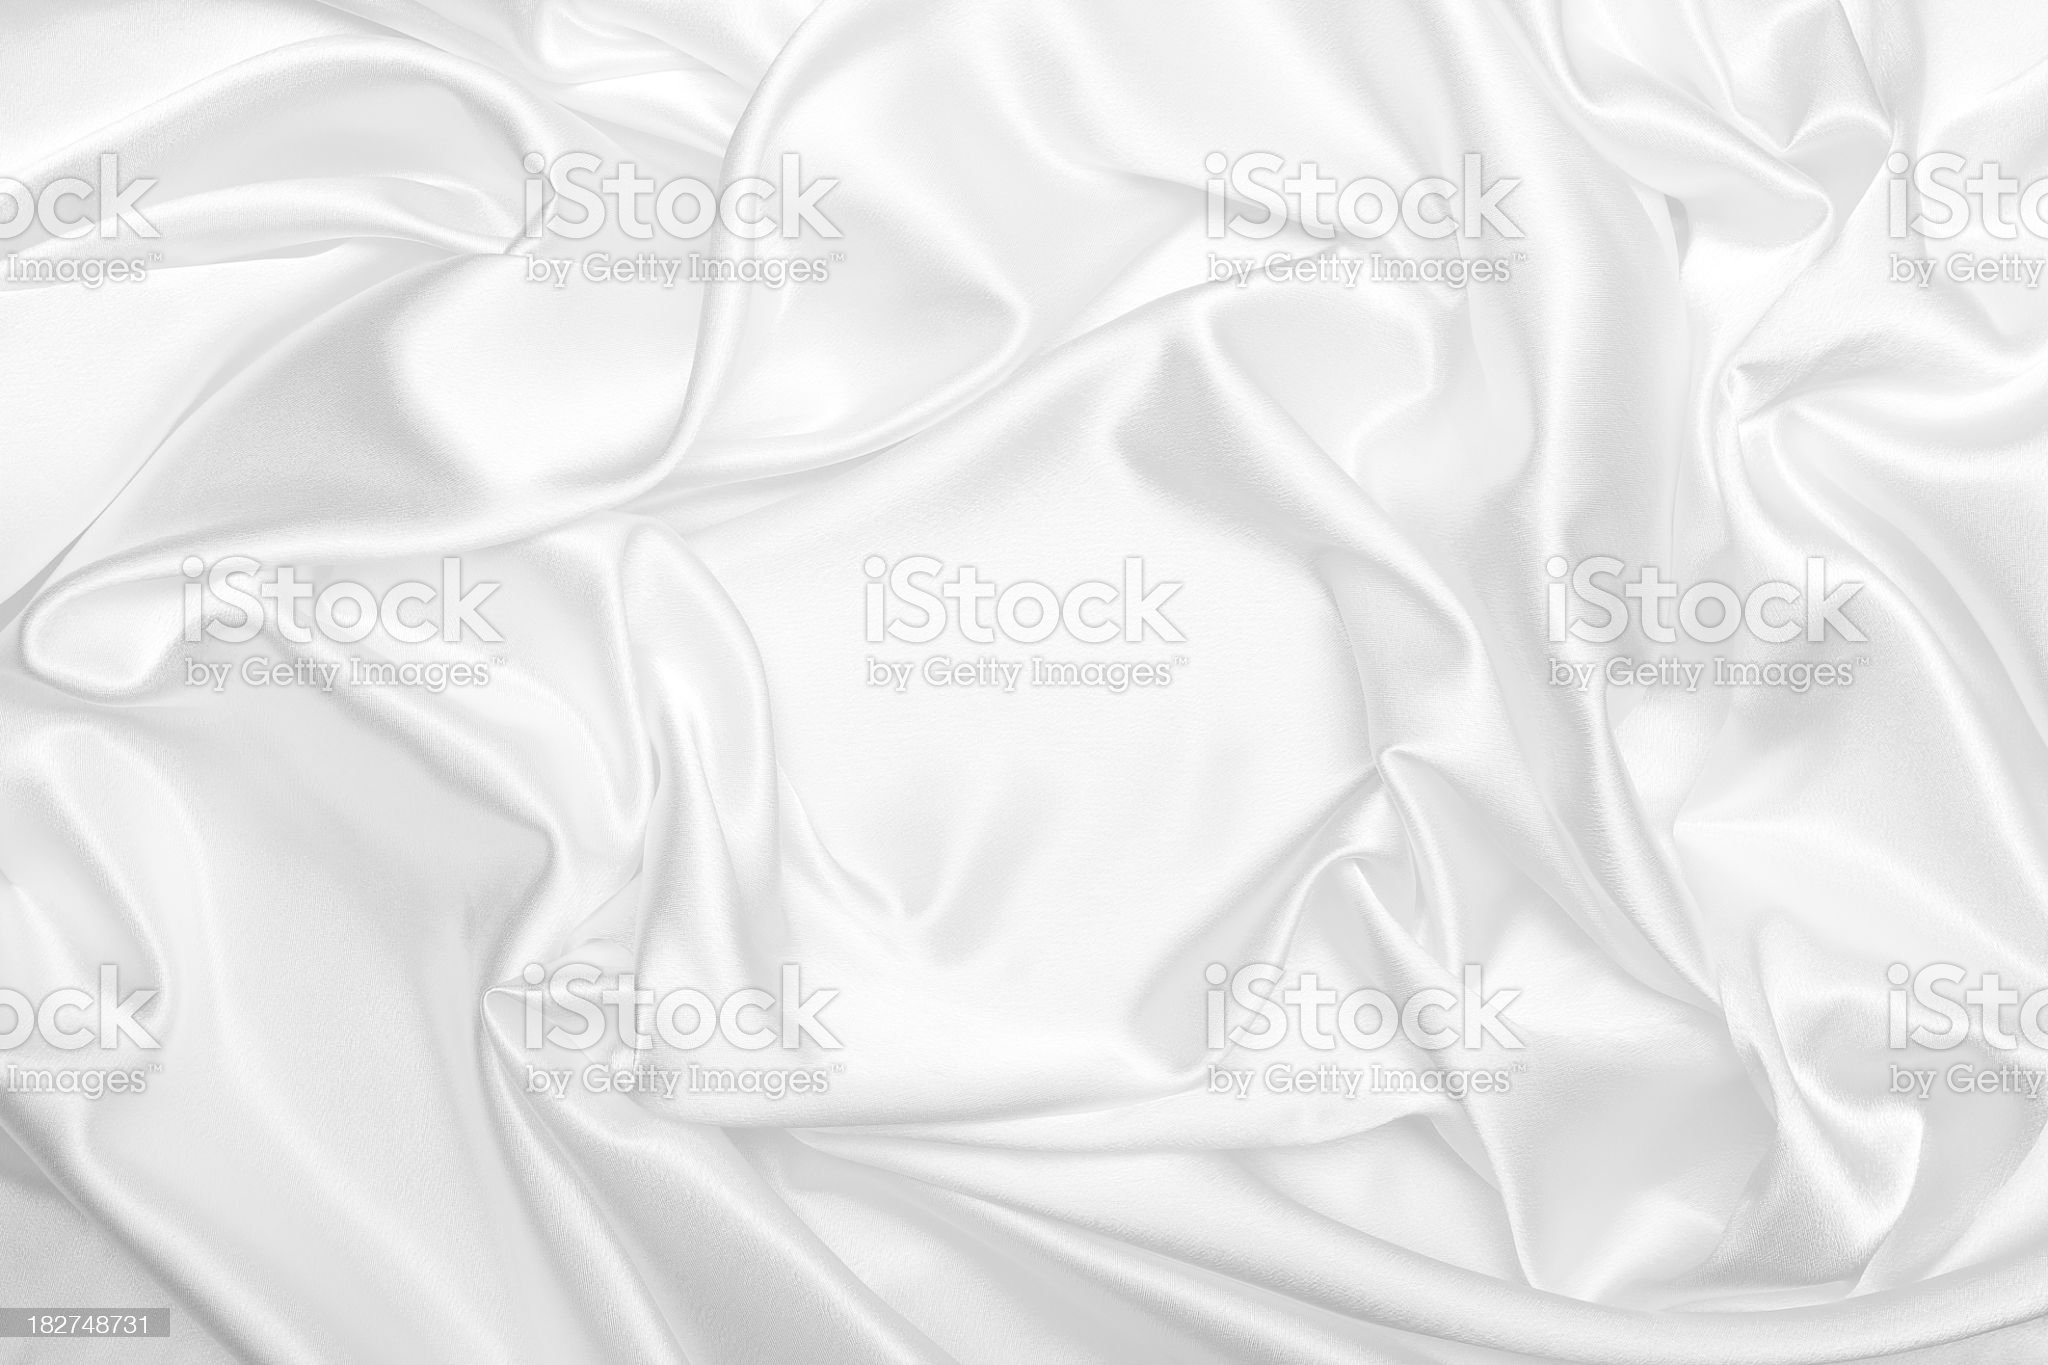 White satin silk wrinkled background royalty-free stock photo